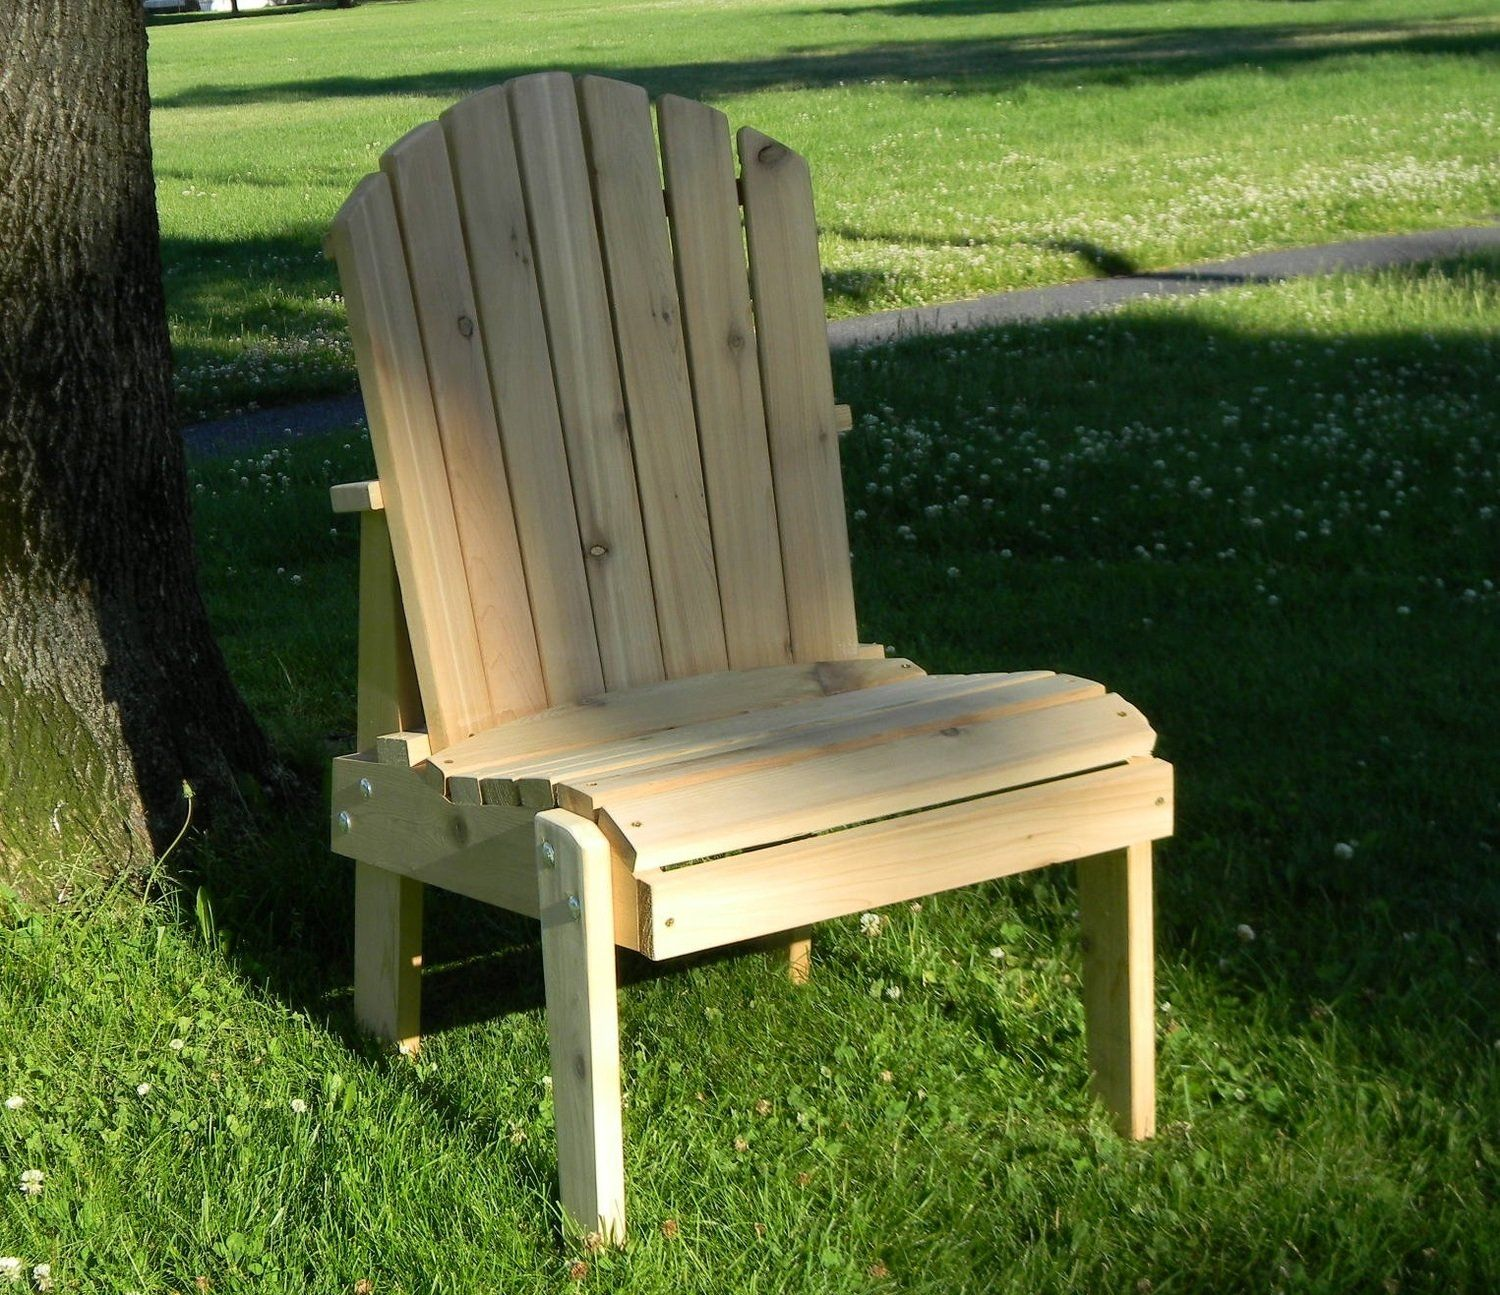 Cool 8013 Armless Adirondack Garden Dining Side Chair Patio Gamerscity Chair Design For Home Gamerscityorg